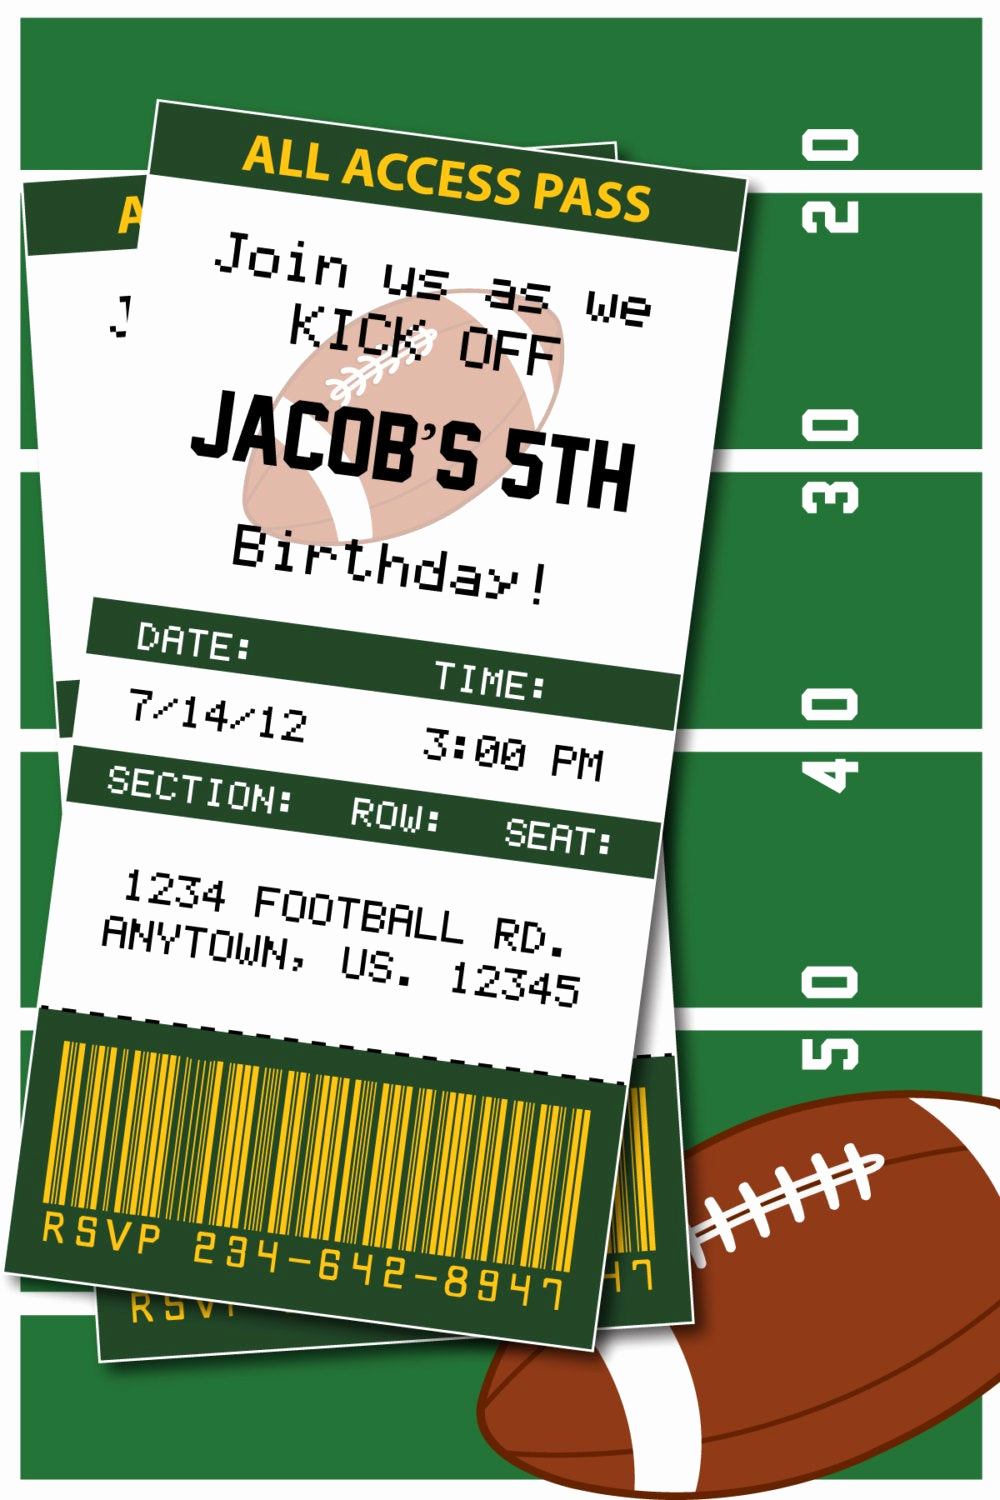 Super Bowl Party Invitation Wording Unique Football Birthday Party or Superbowl 2015 by